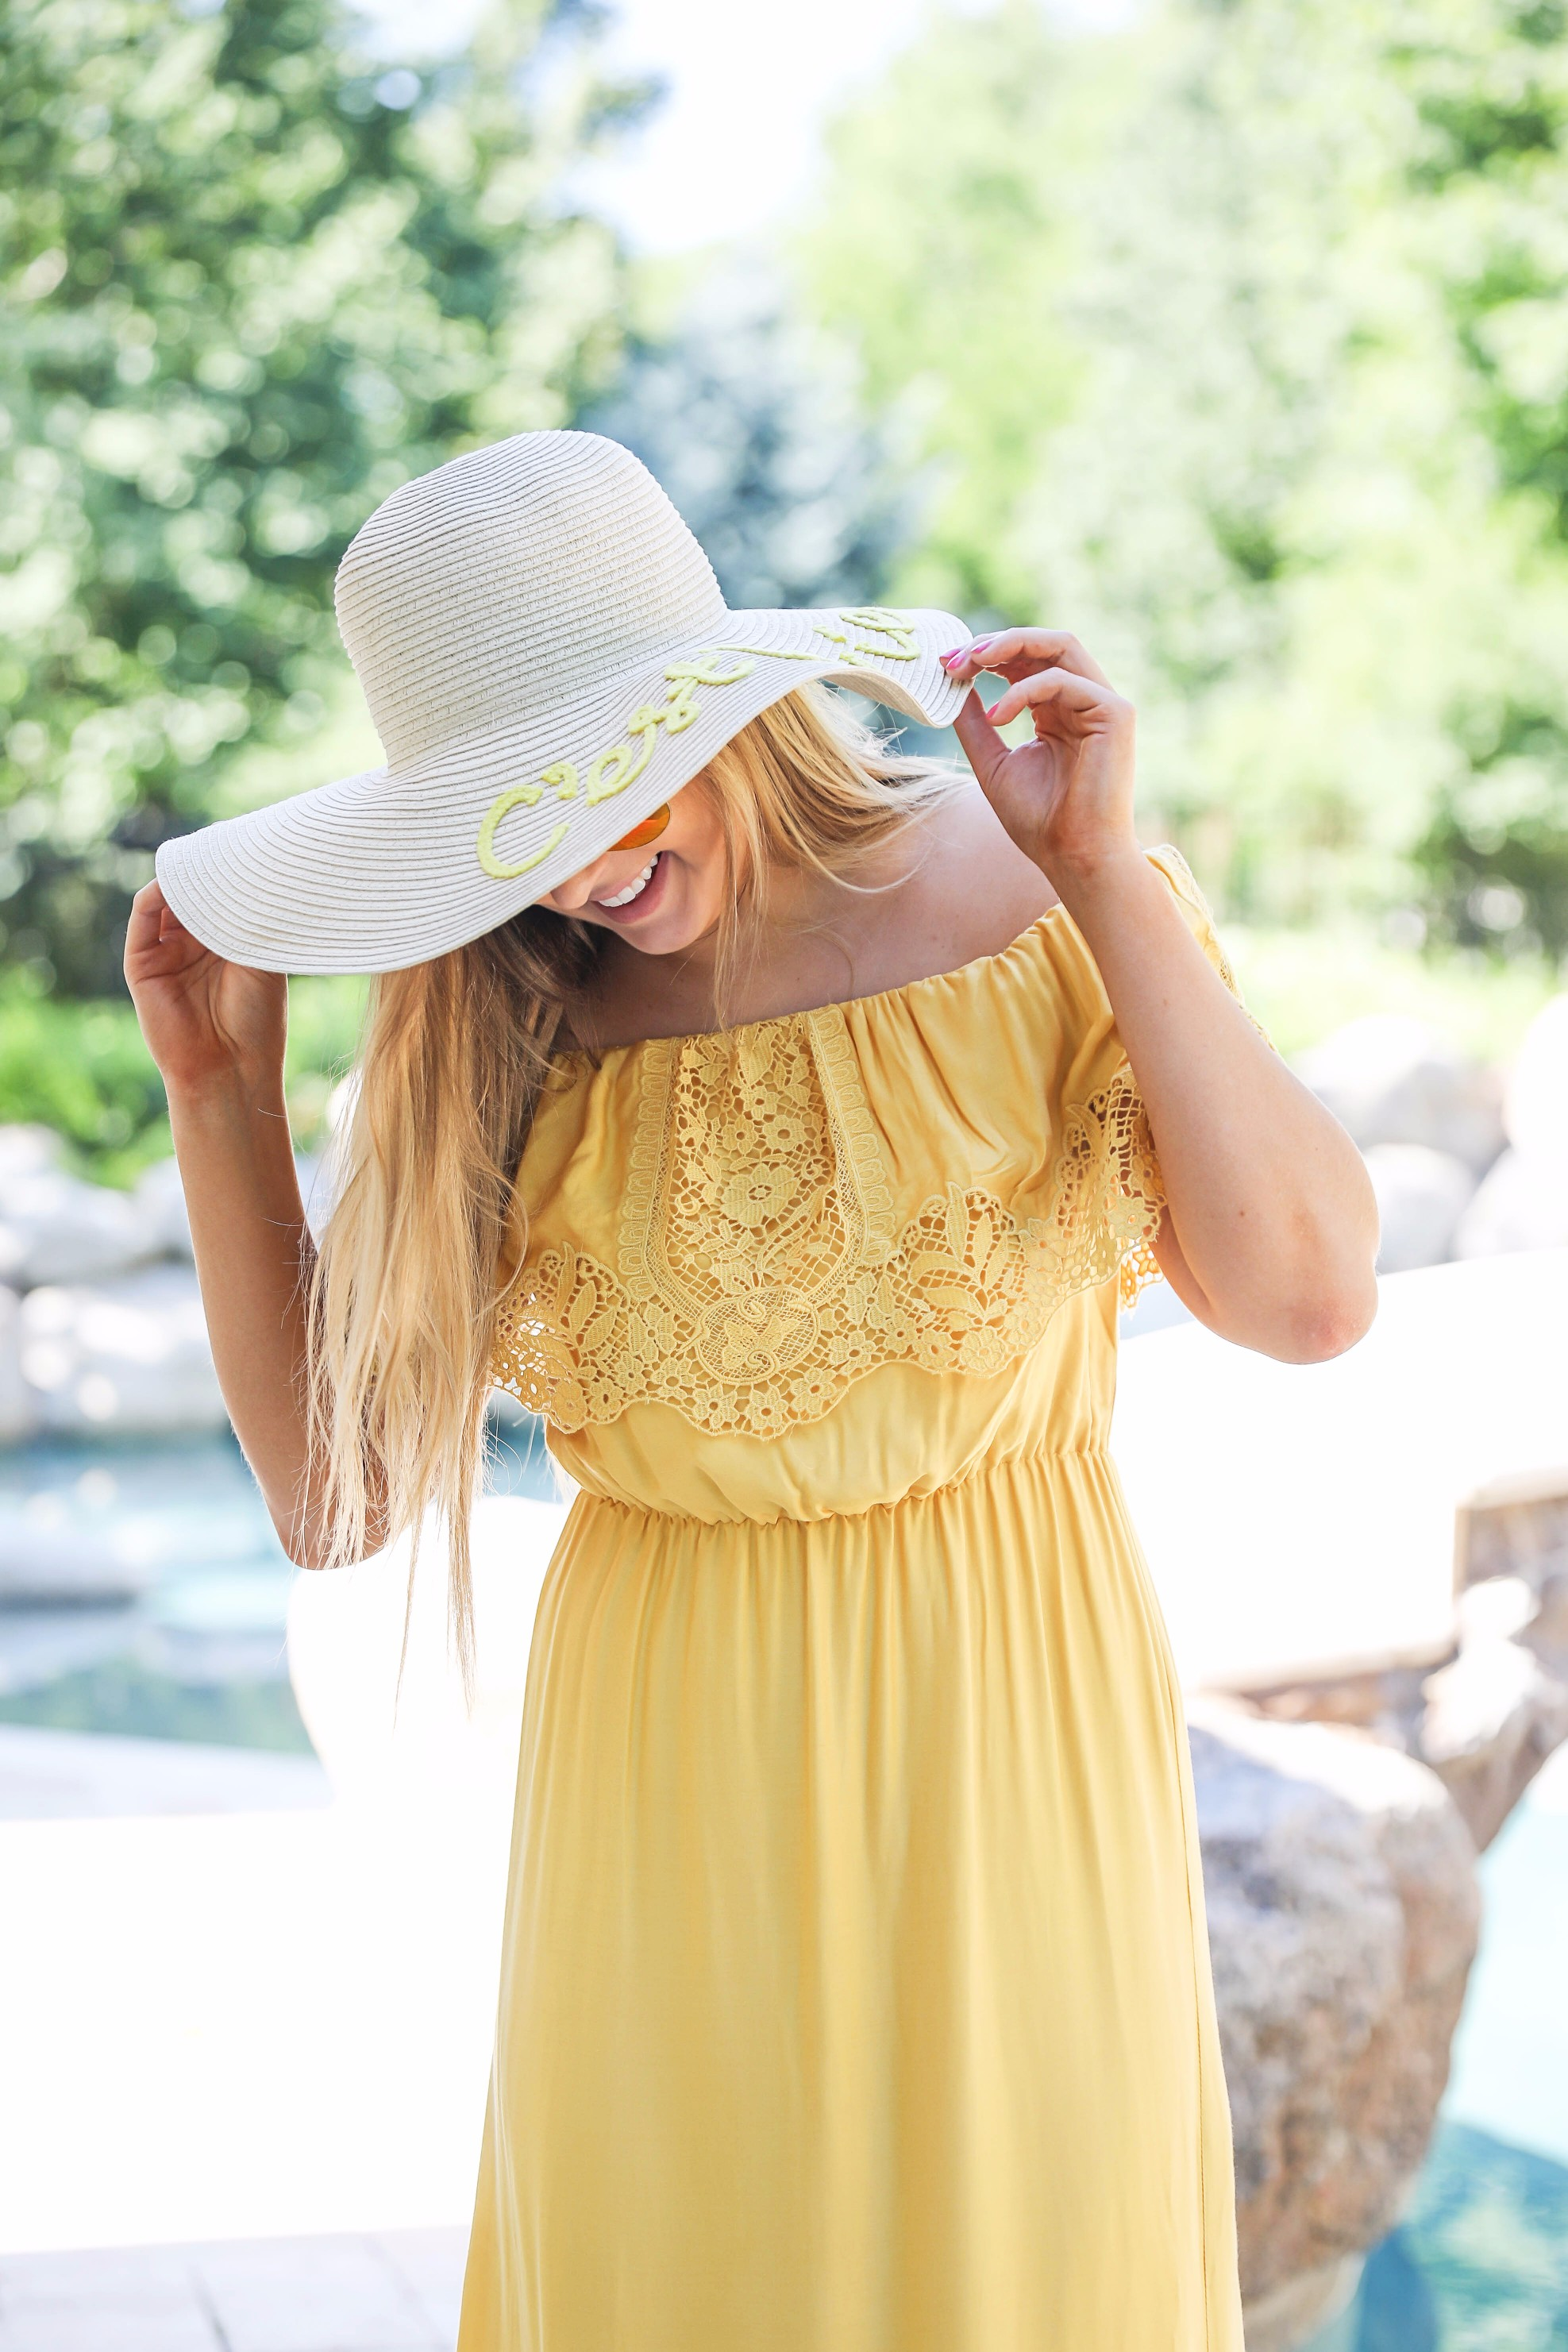 Yellow midi maxi dress poolside with cest la vie quote sun hat on fashion blog daily dose of charm by lauren lindmark